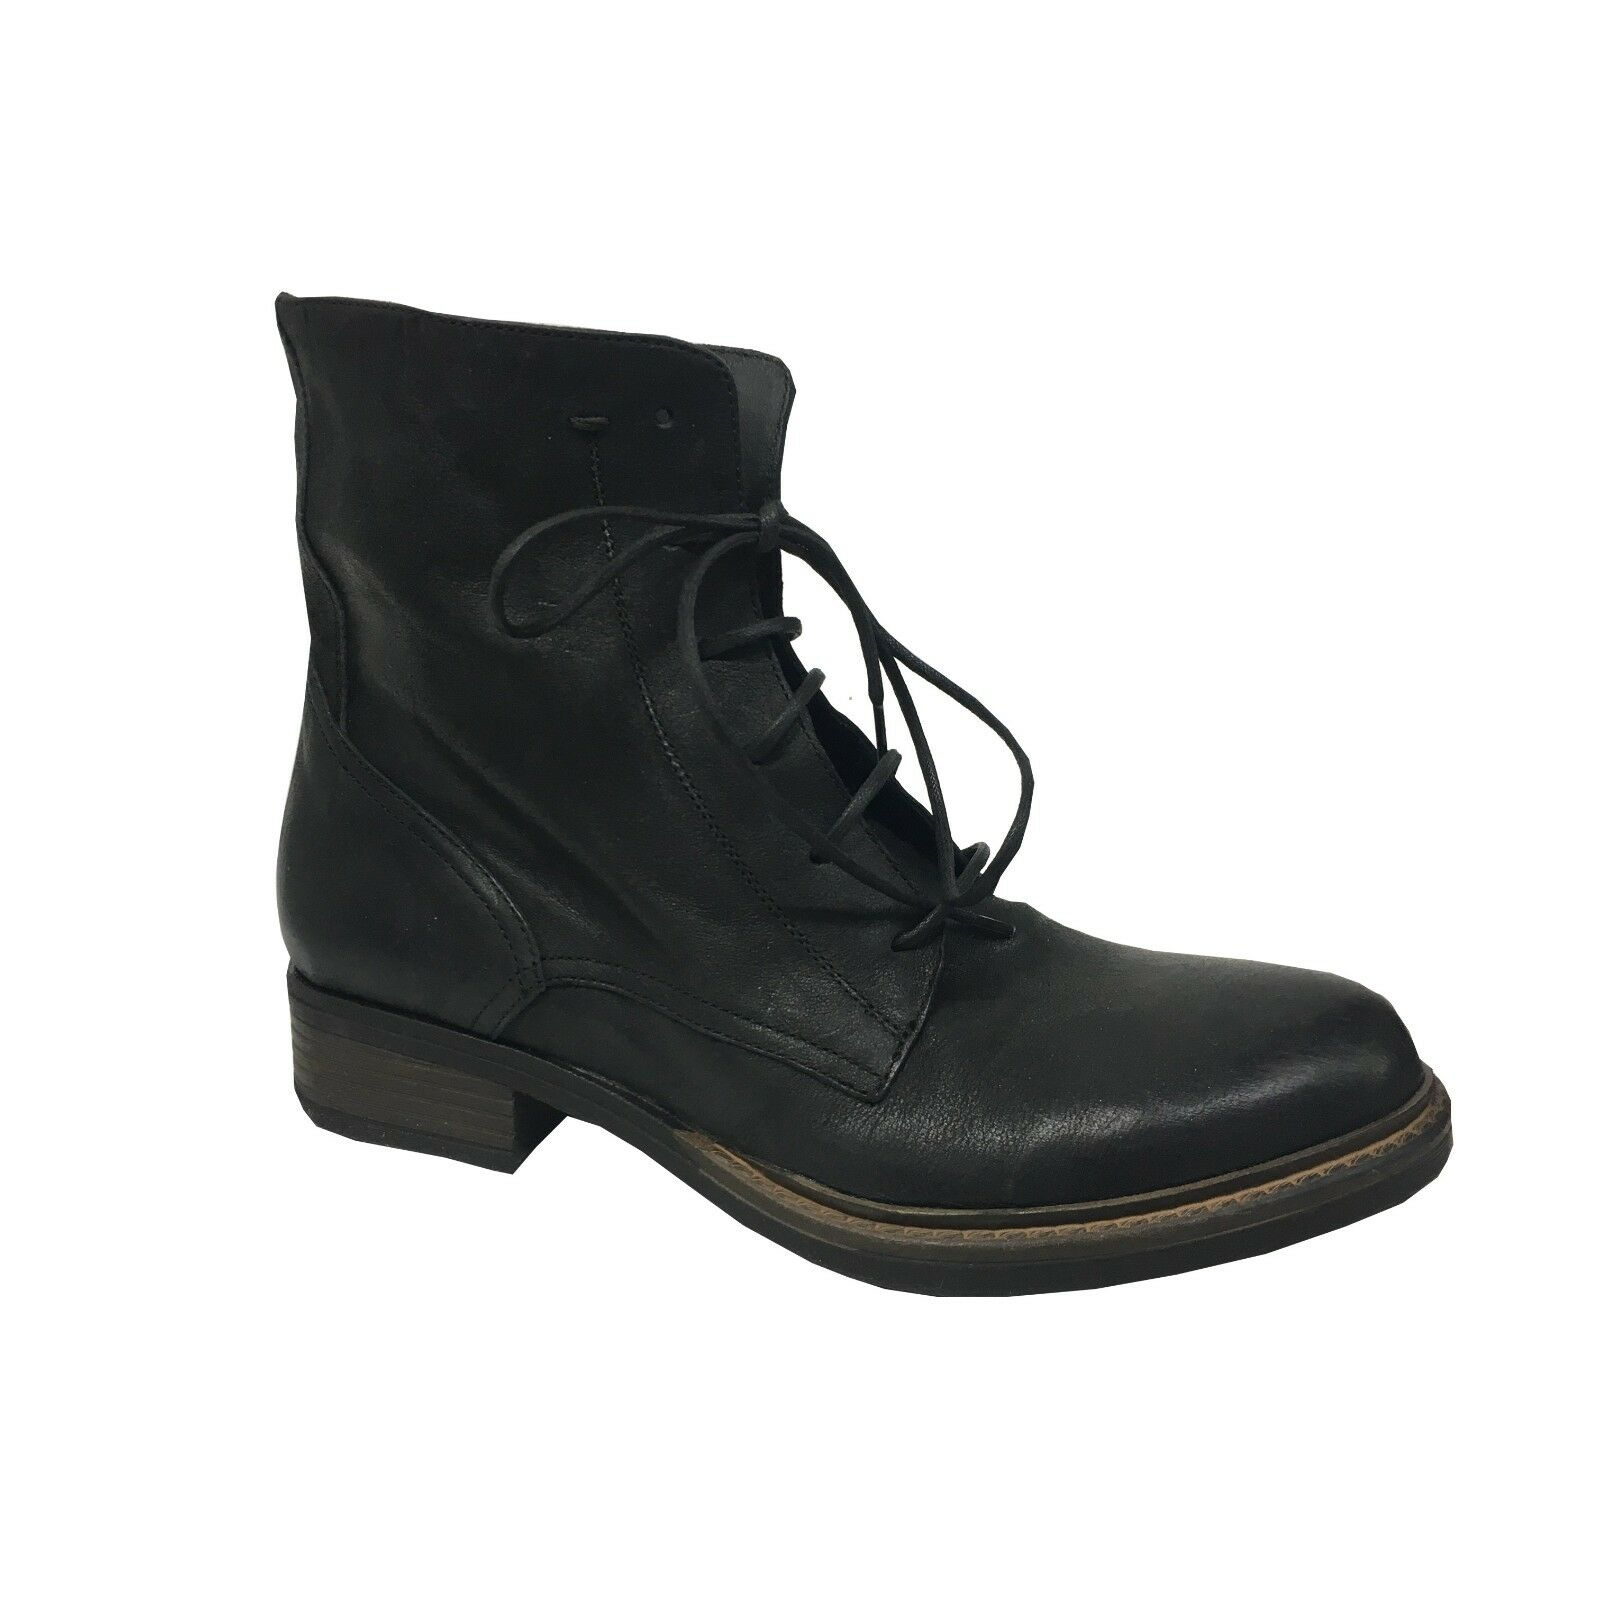 WHY NOT bottine femme avec lacets noir VALERIE VALERIE VALERIE 100% cuir MADE IN ITALY 878142